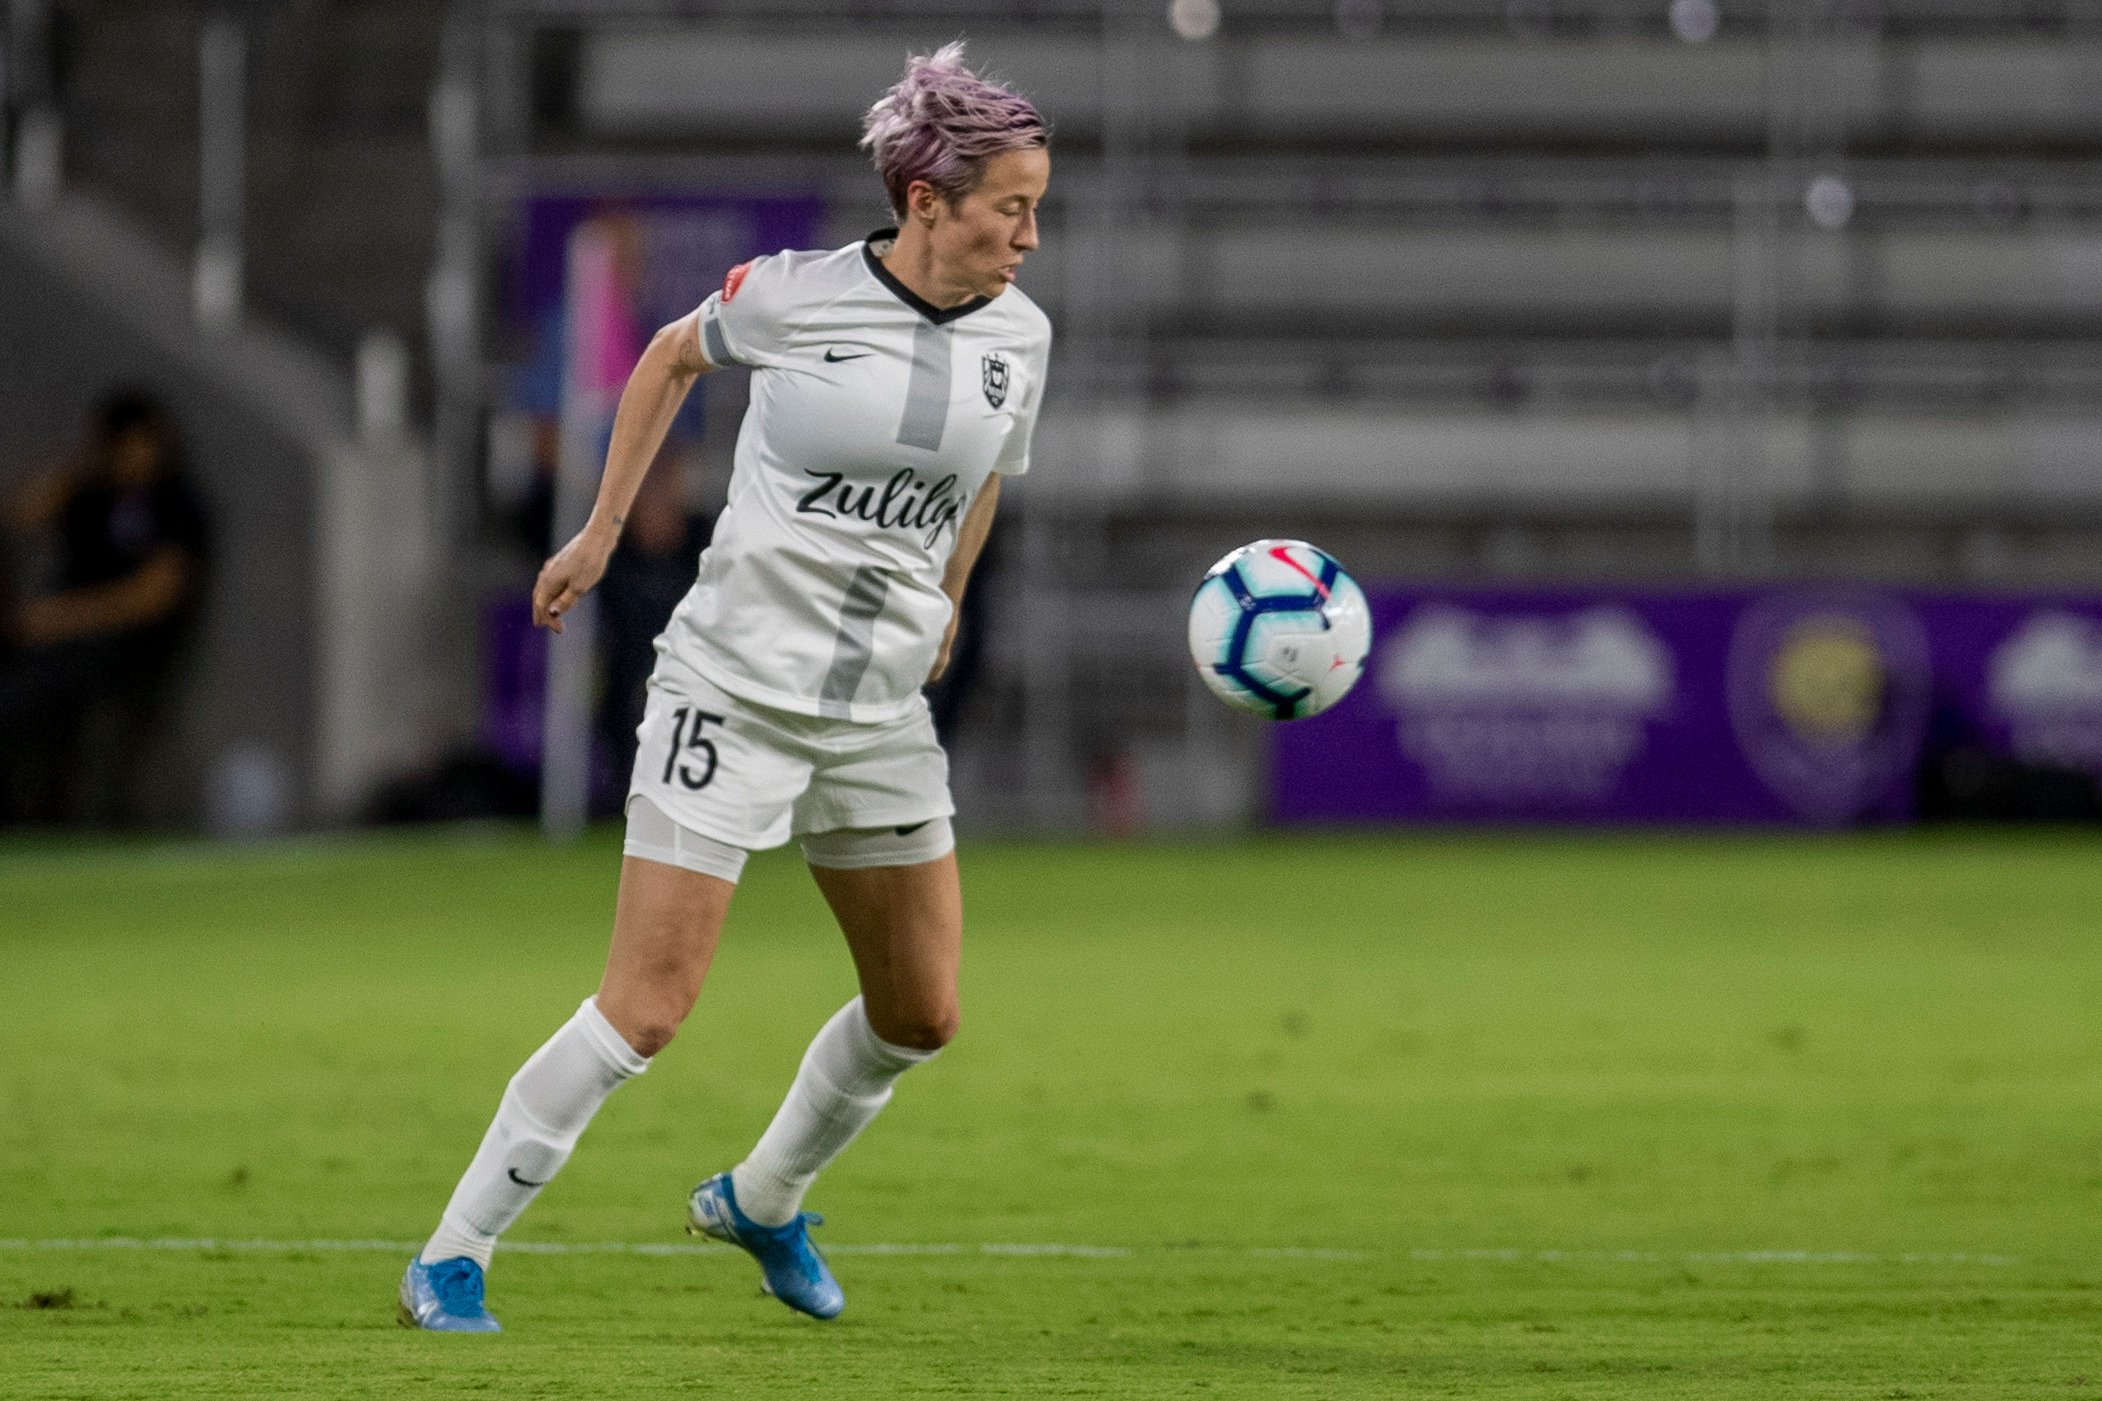 Football pundit Alex Scott praises 'courageous' Megan Rapinoe saying 'she is what we need in the women's game'